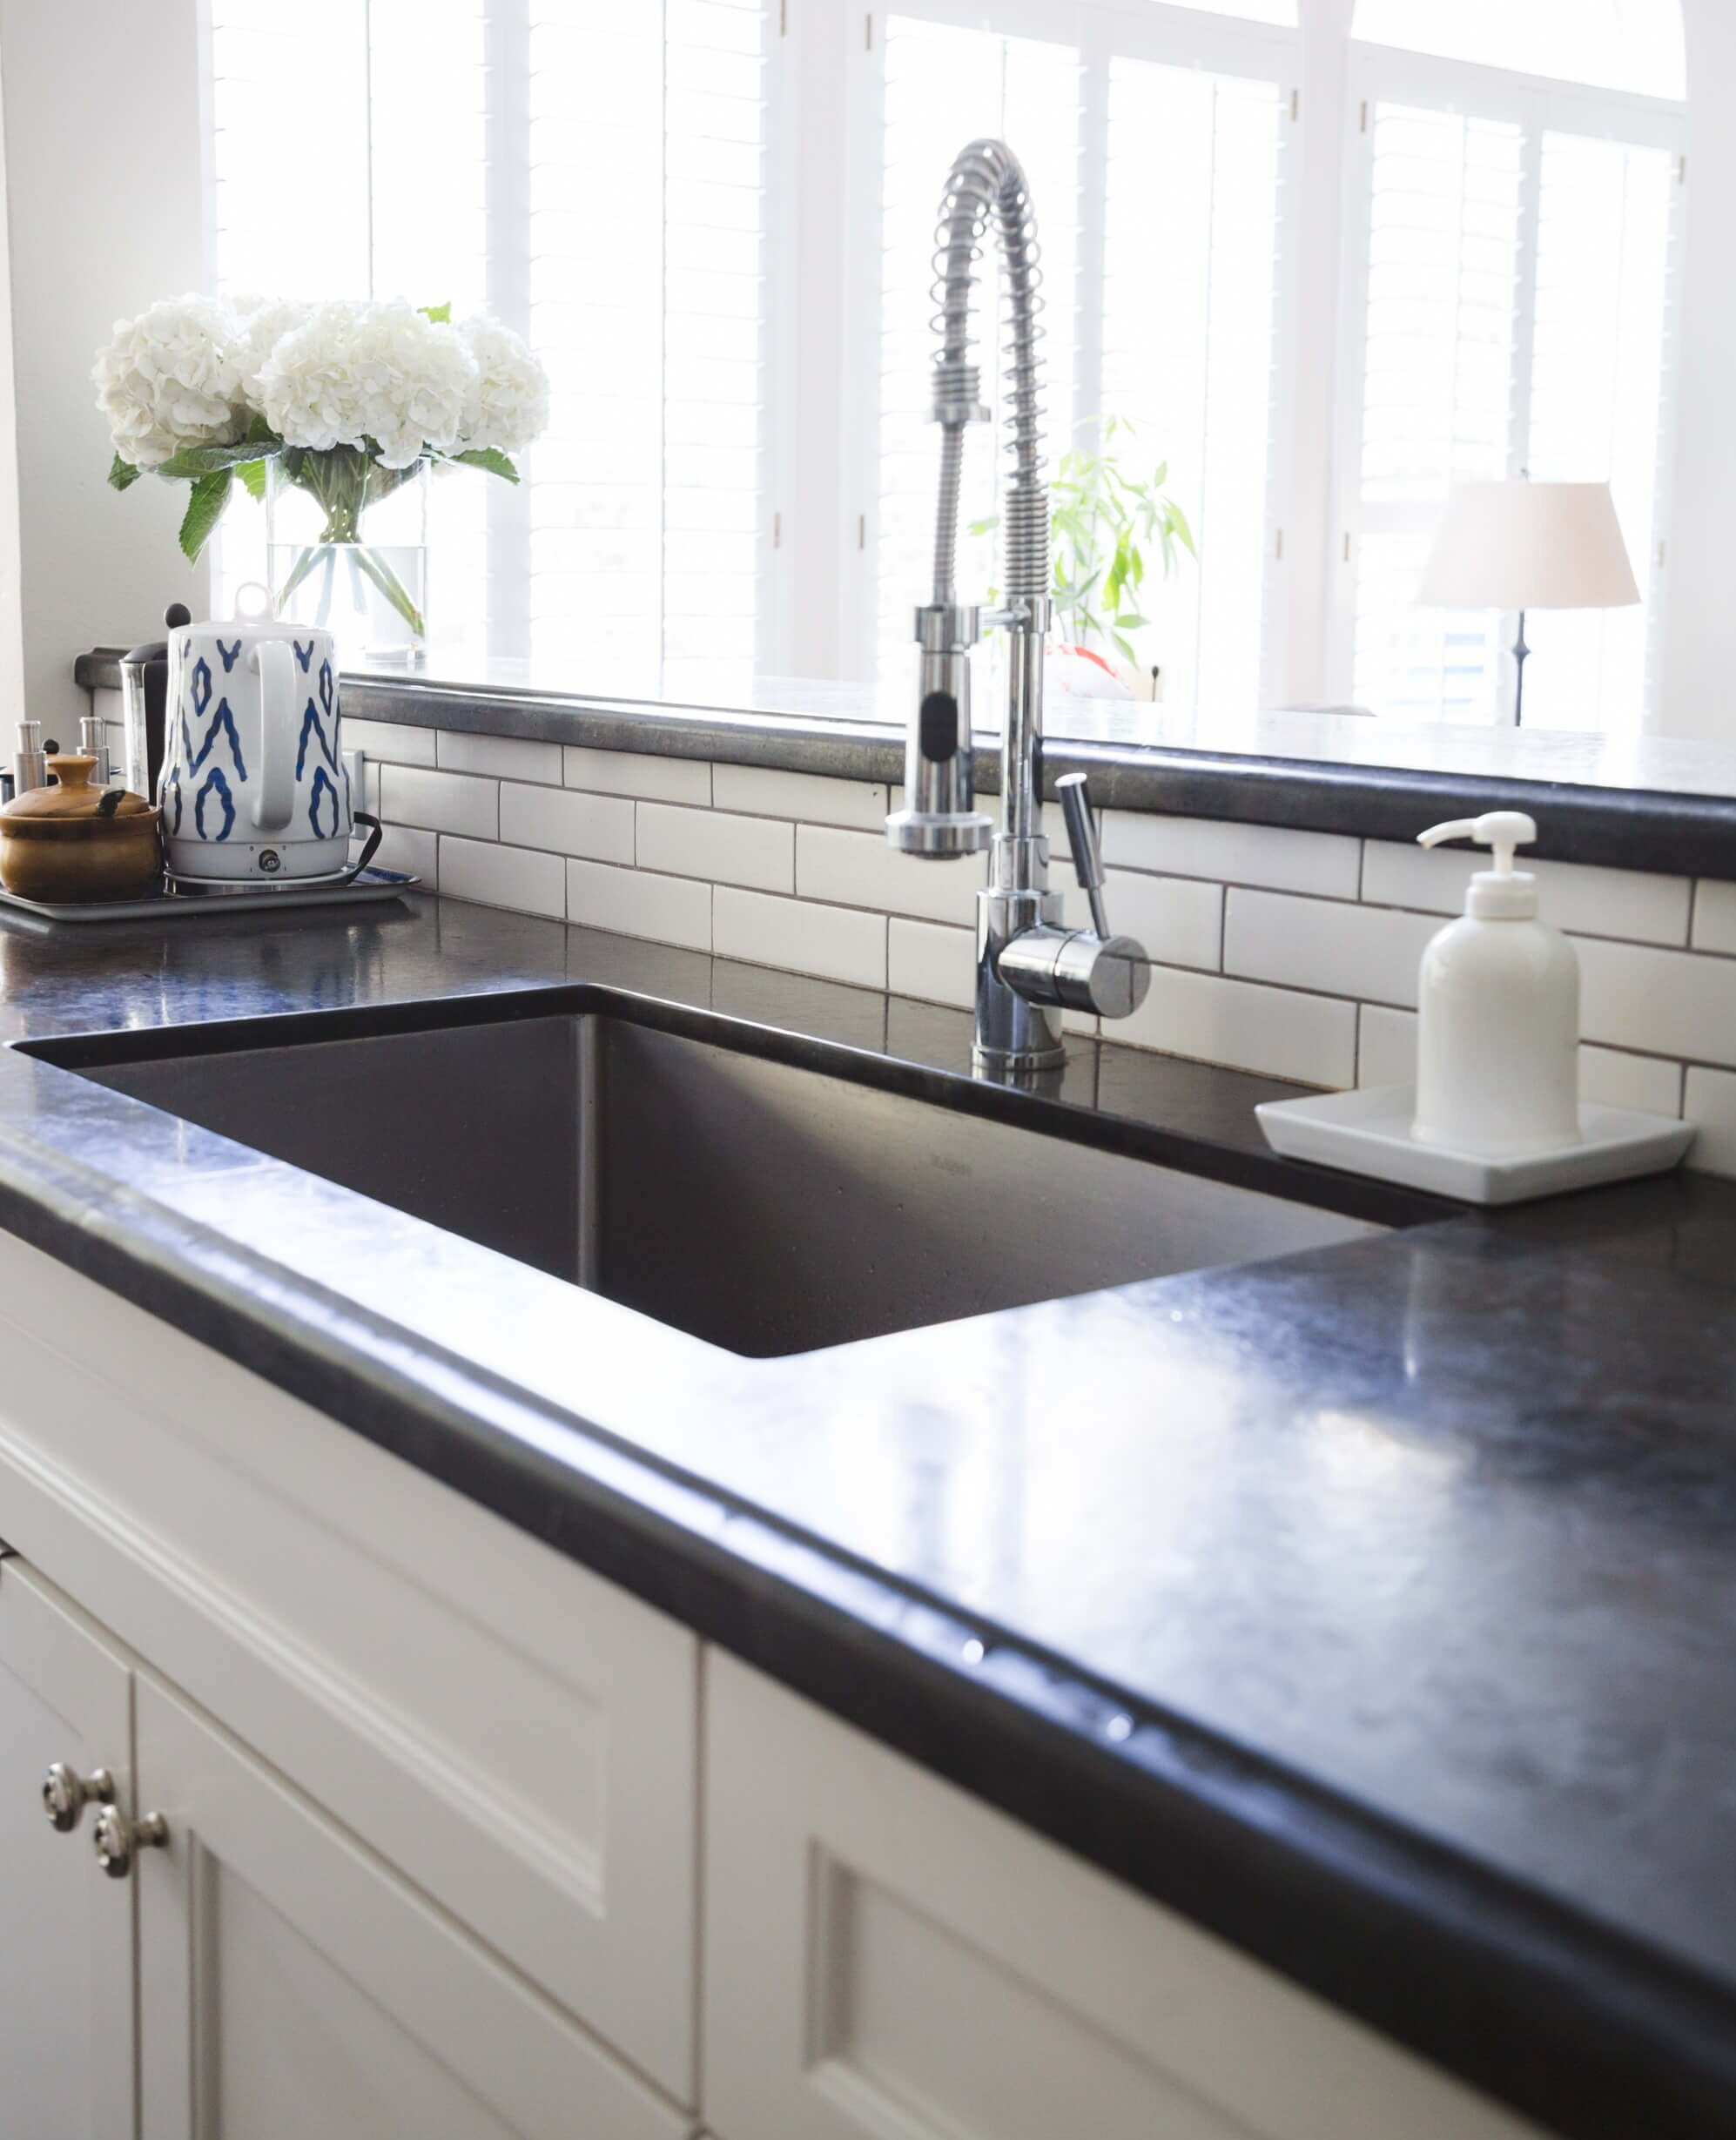 """My kitchen remodel with the 42"""" high raised bar at the kitchen sink. It hides the dishes in the sink, nicely. :-) Carla Aston, Designer 